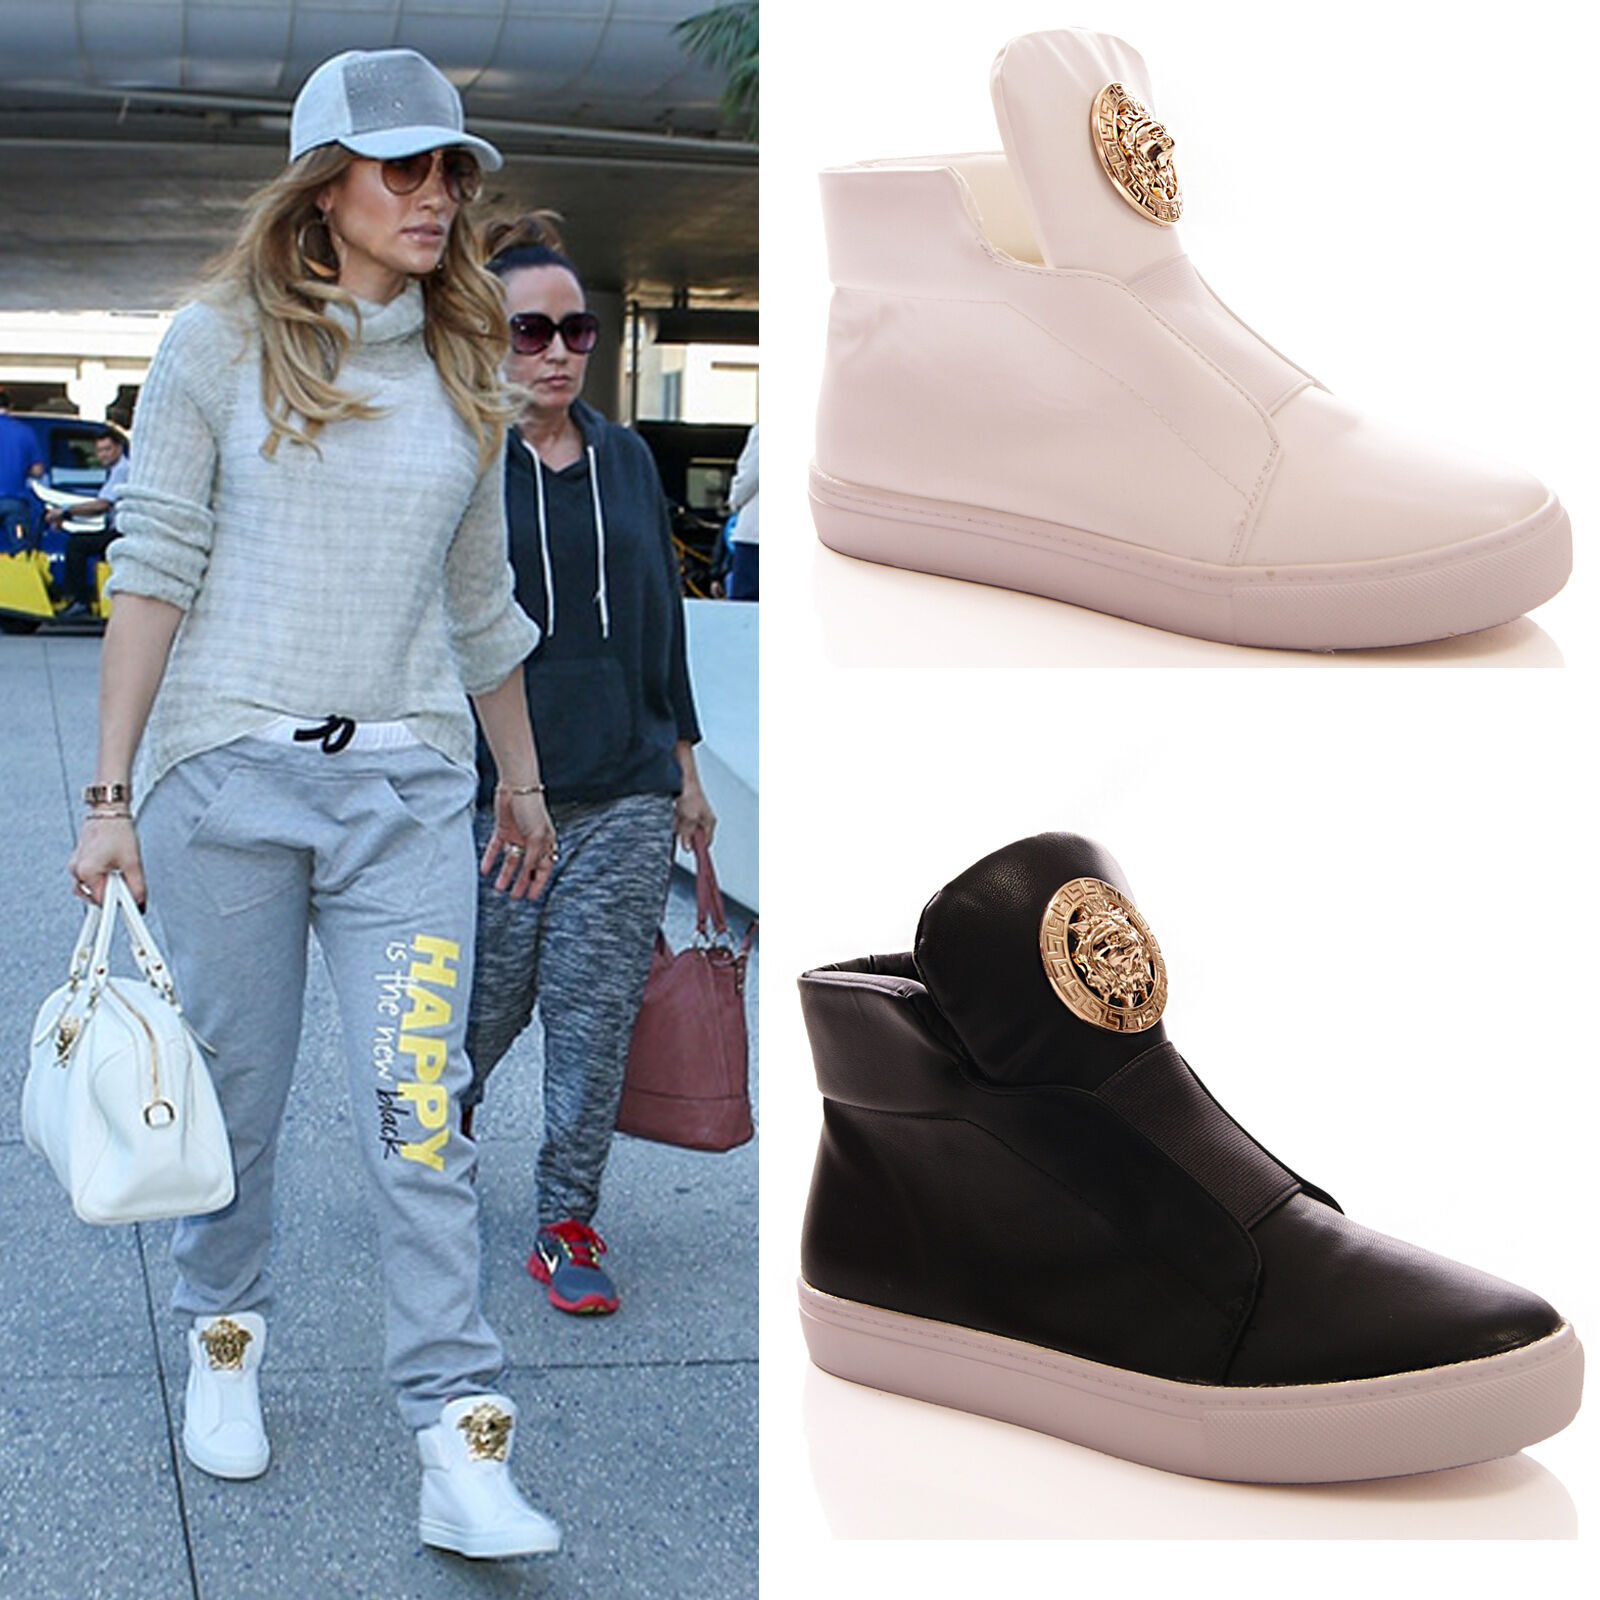 LADIES FASHION Mujer HI TOP TRAINERS FASHION LADIES FLAT SNEAKERS CASUAL Zapatos Talla ad5d6b